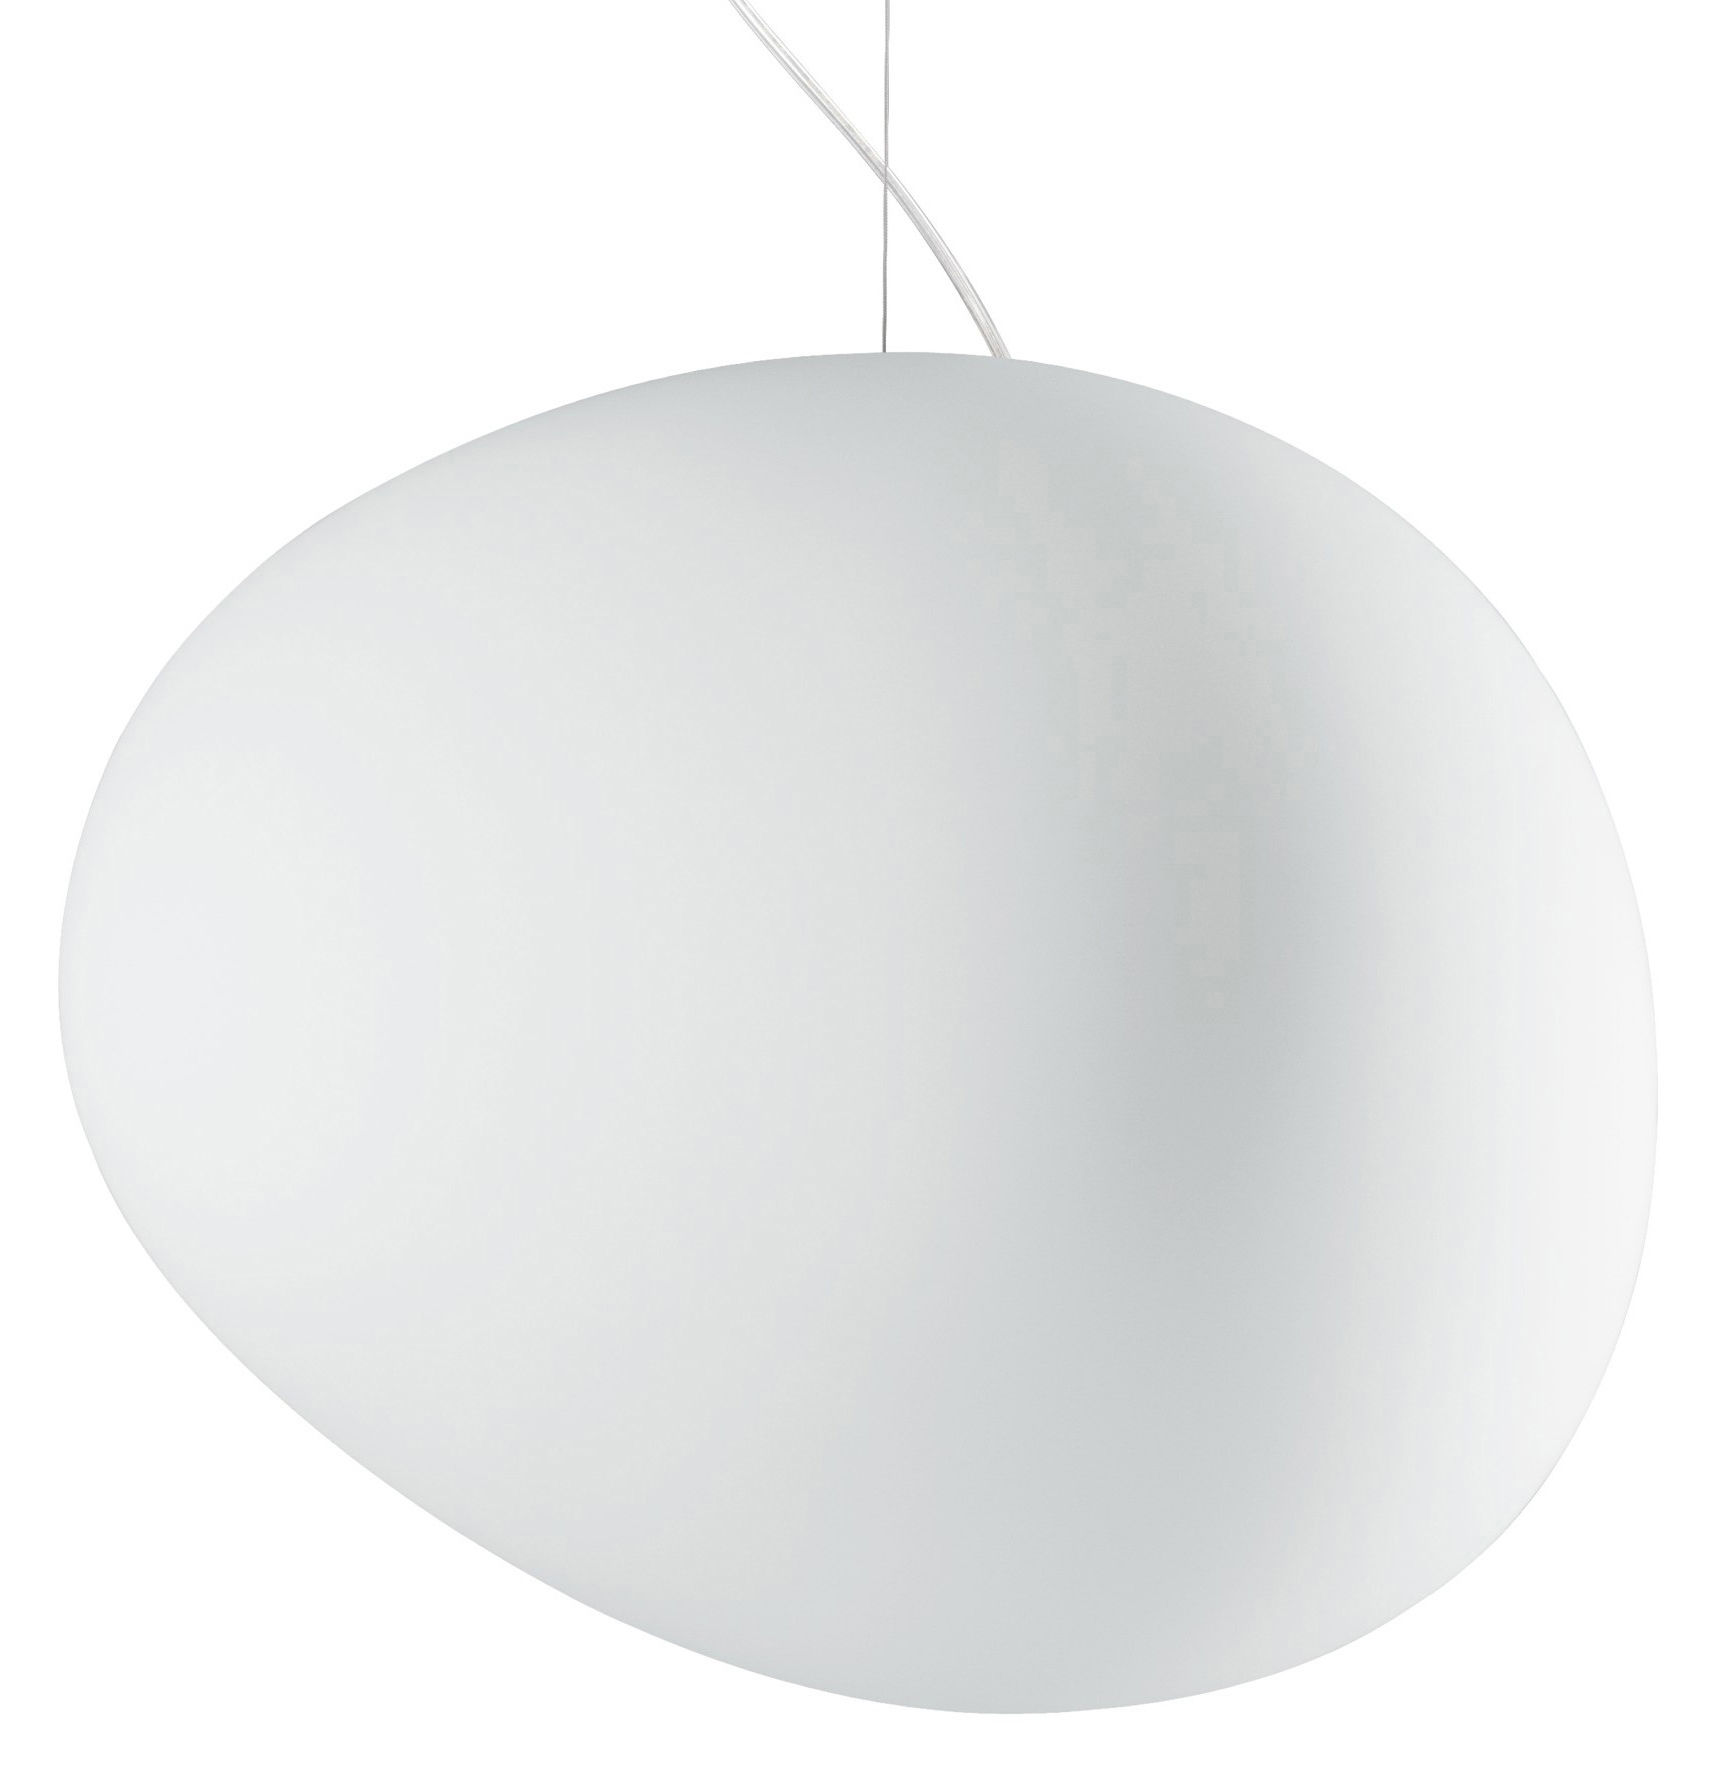 Lighting - Pendant Lighting - Gregg Grande Pendant - Large by Foscarini - White - Blown glass